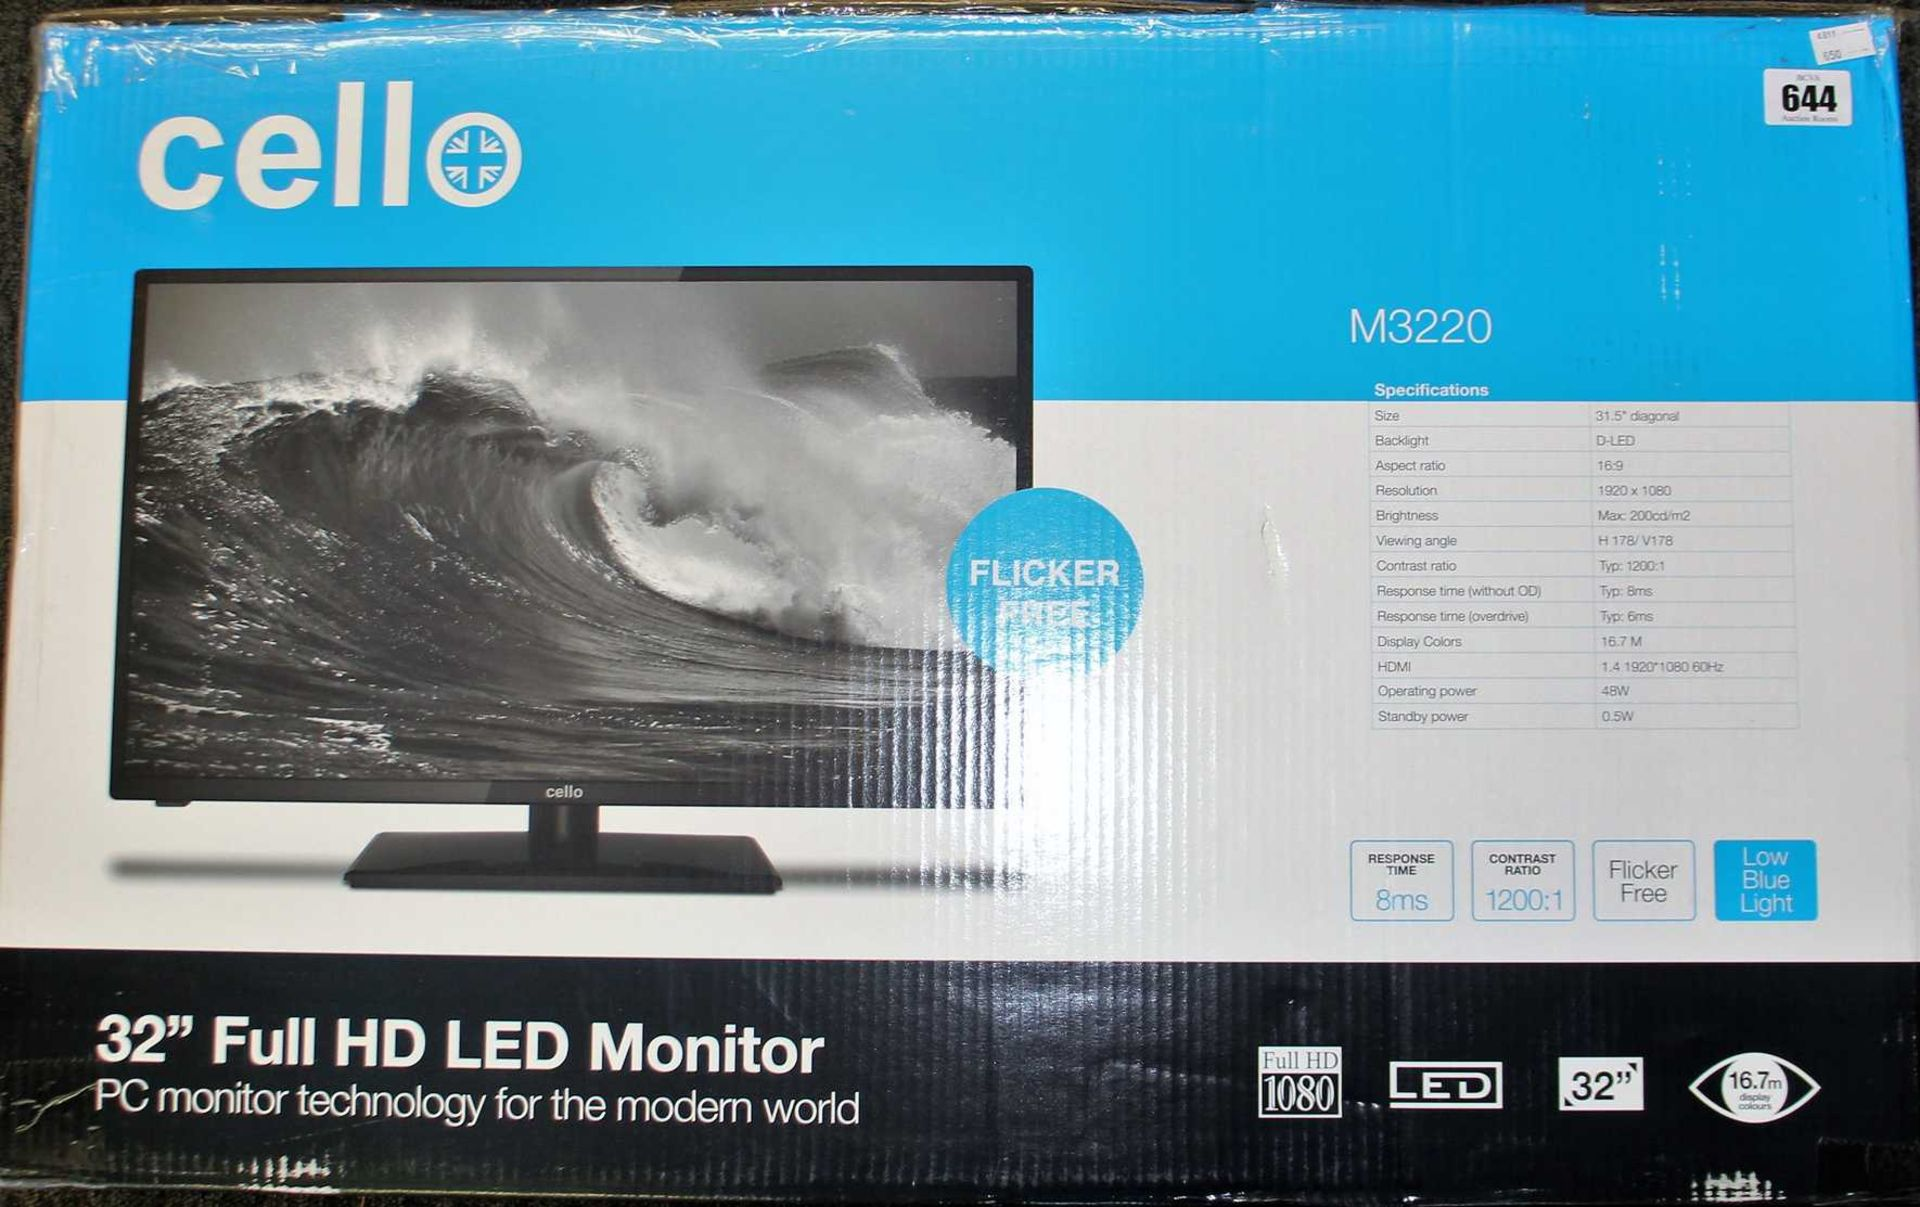 """COLLECTION ONLY: A boxed as new Cello M3220 32"""" Full HD LED Monitor (Box opened, damaged box)."""